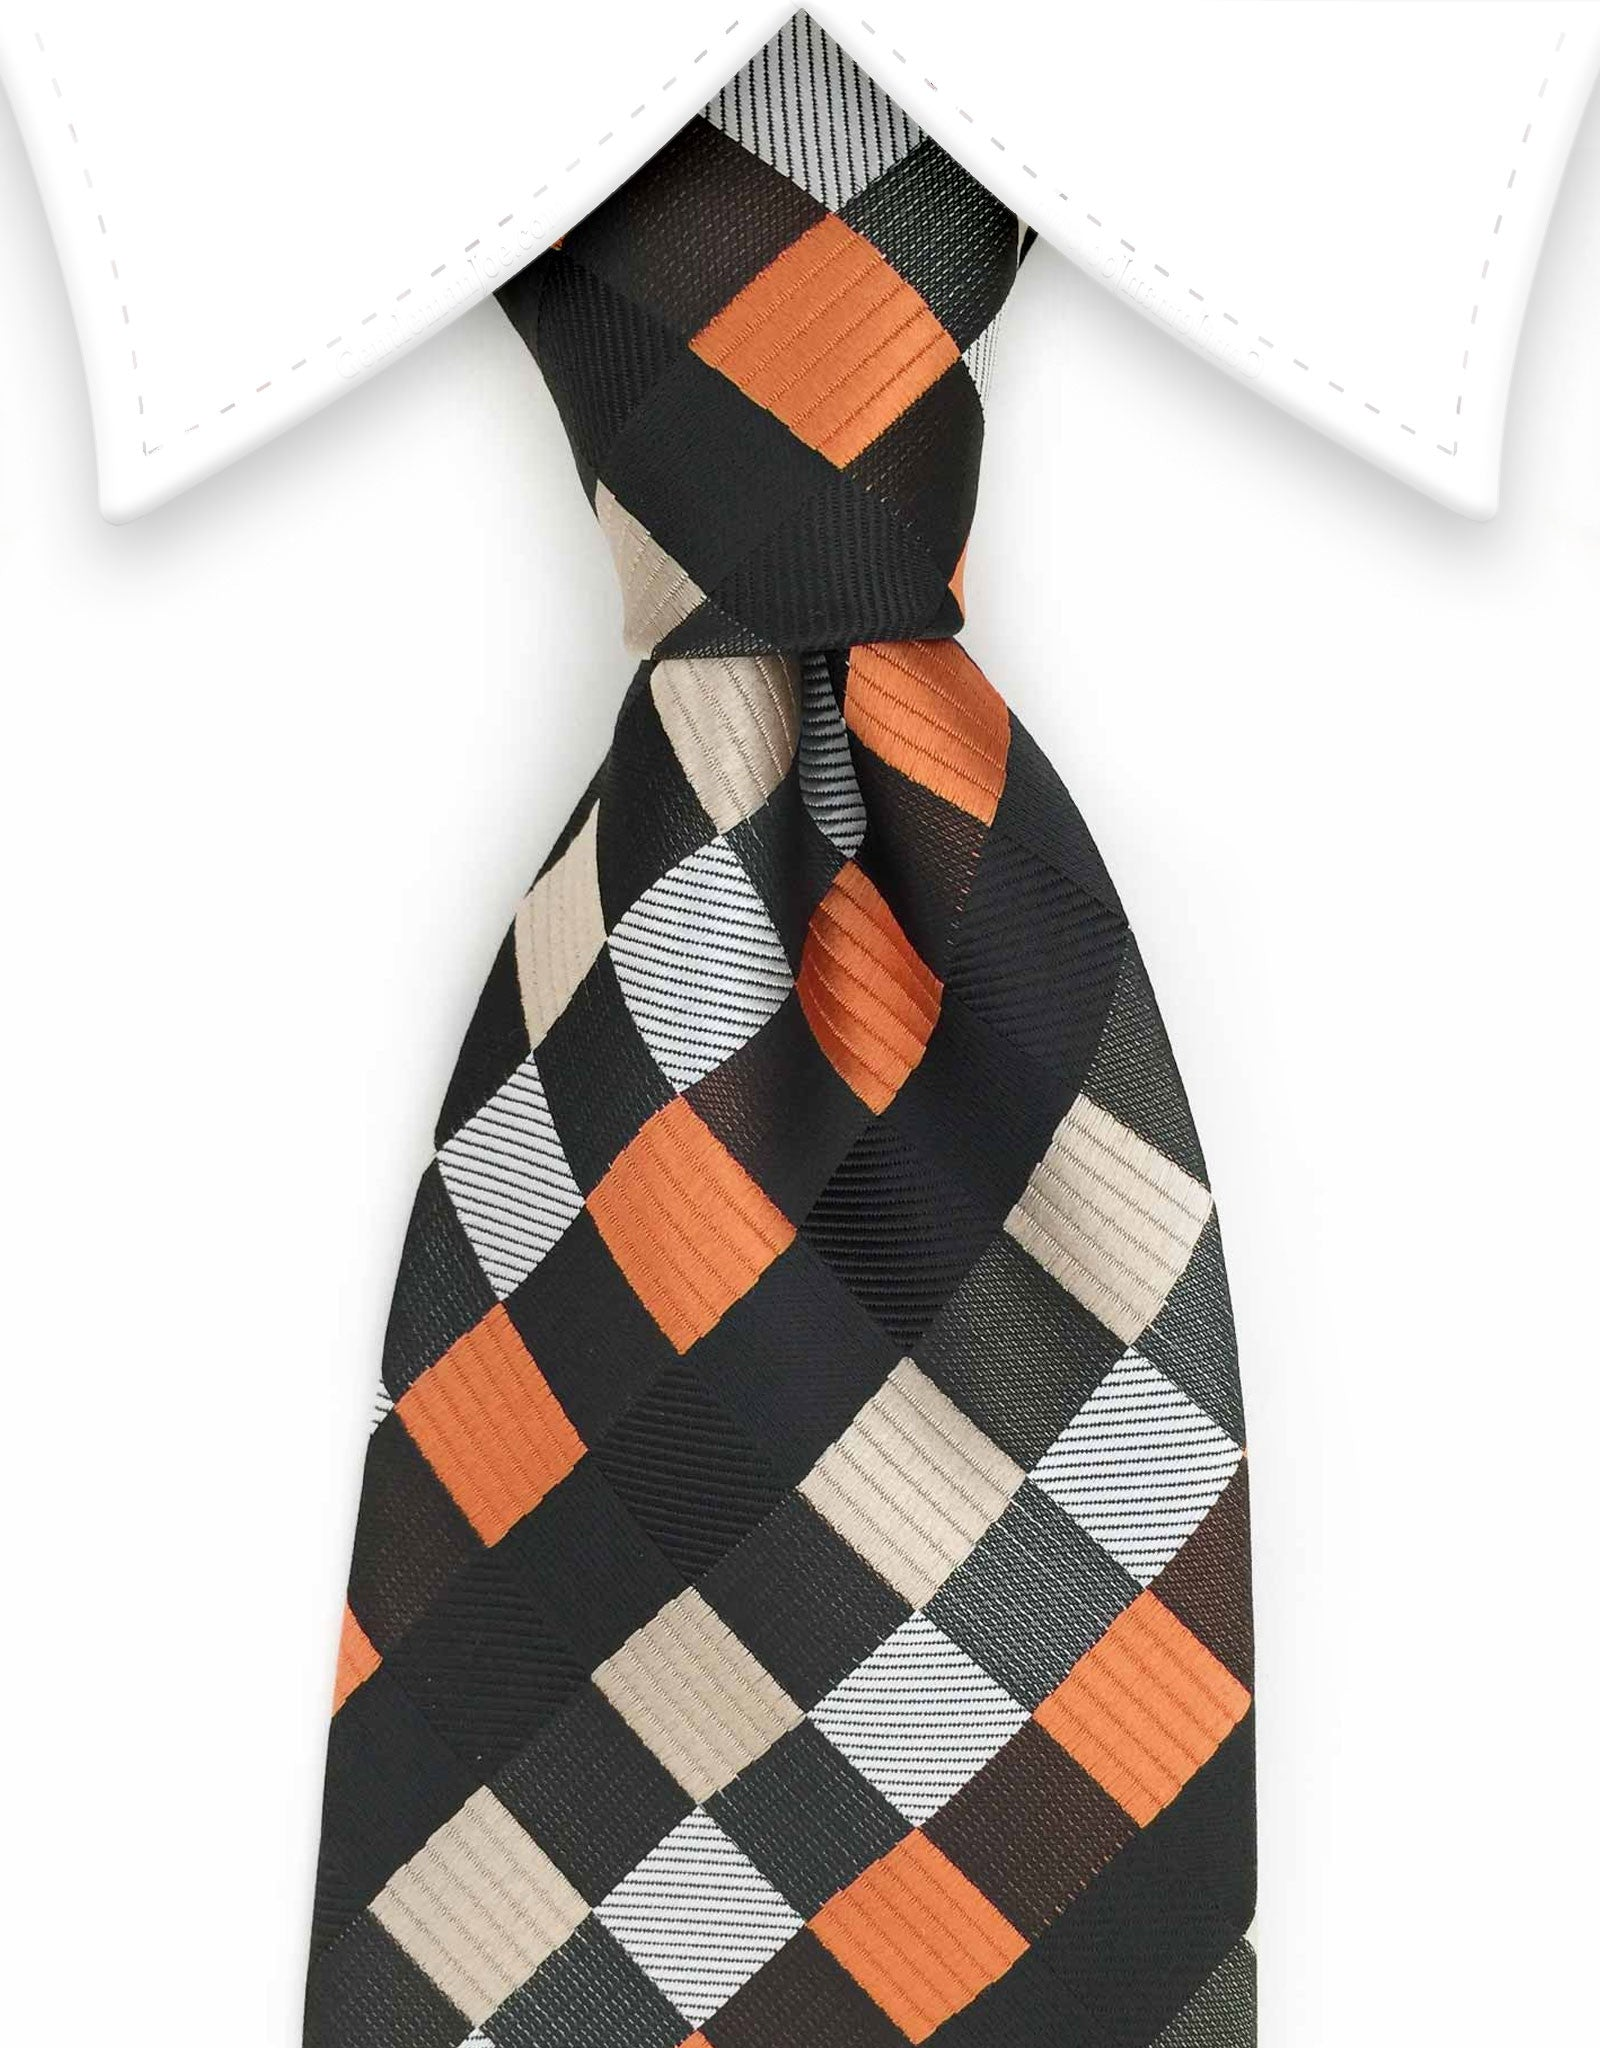 brown, orange, black, silver taupe silk tie